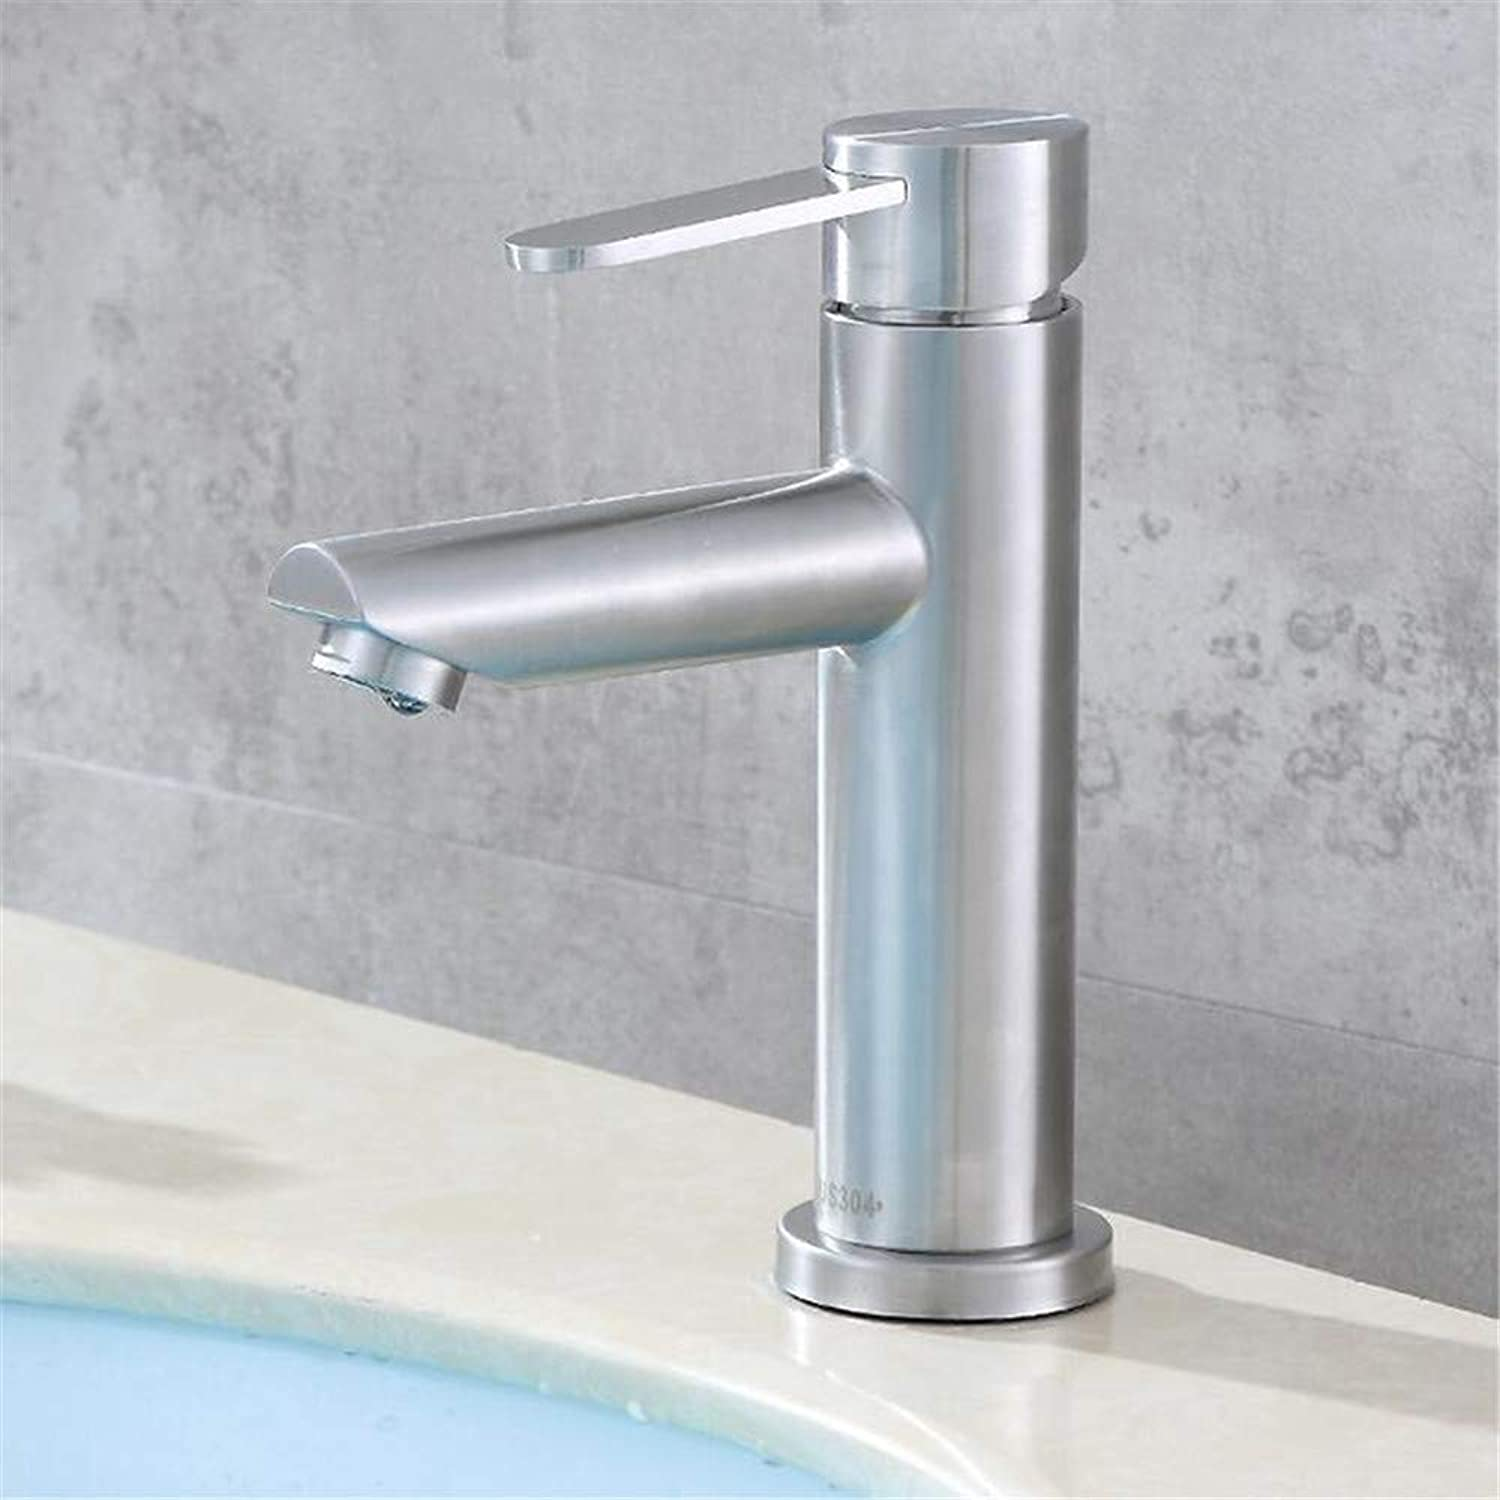 Faucetbasin Mixer Tap 304 Stainless Steel Single Hole Cold and Hot Basin Faucet Bathroom Washbasin Basin Mixing Faucet